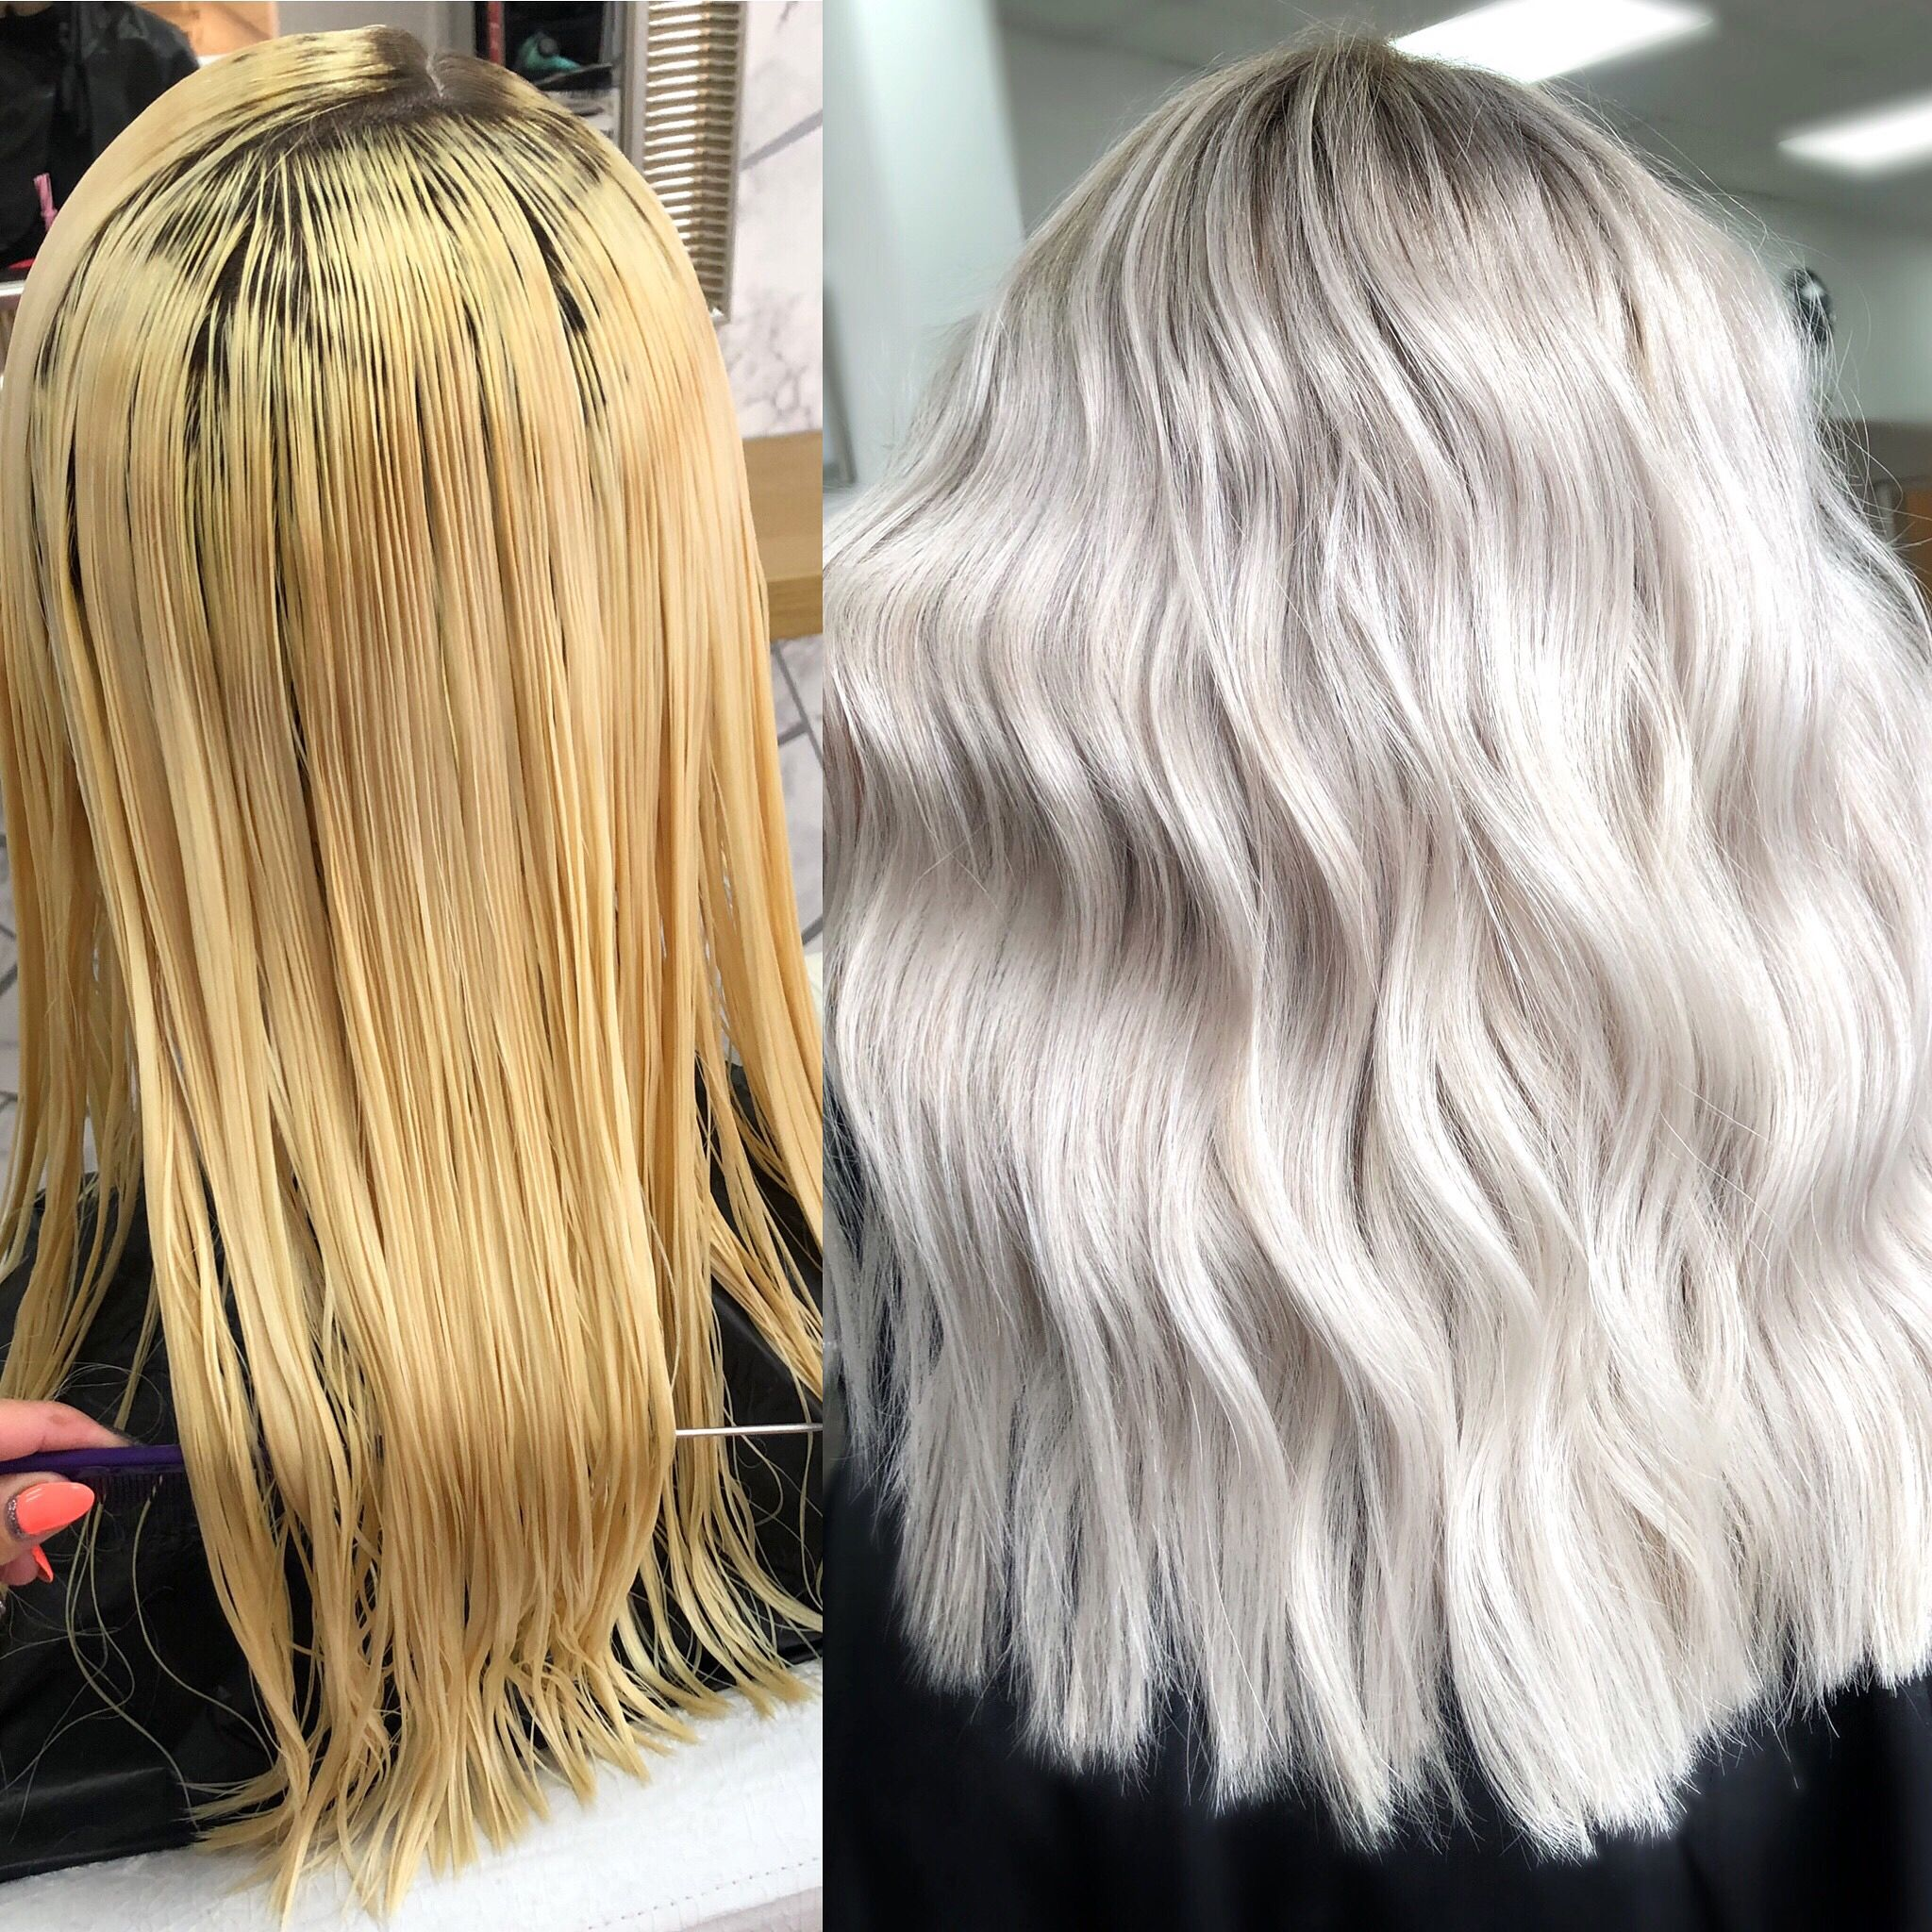 Makeover The Importance Of Proper Toning Toner For Blonde Hair